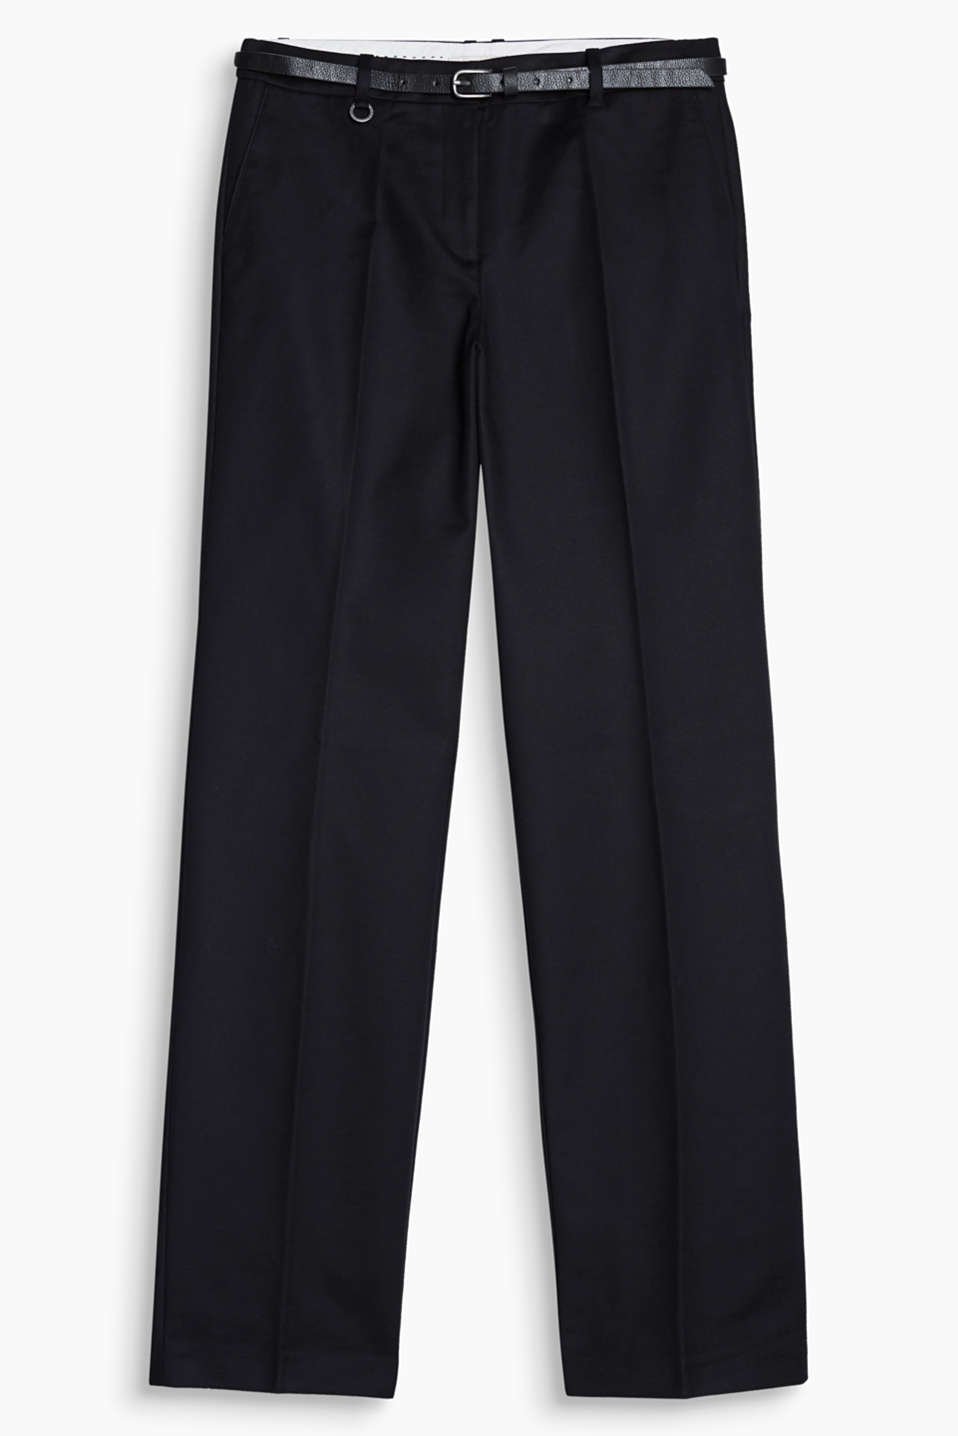 Chic at work, casual at home: the comfortable material and the straight fit make these trousers an all rounder!